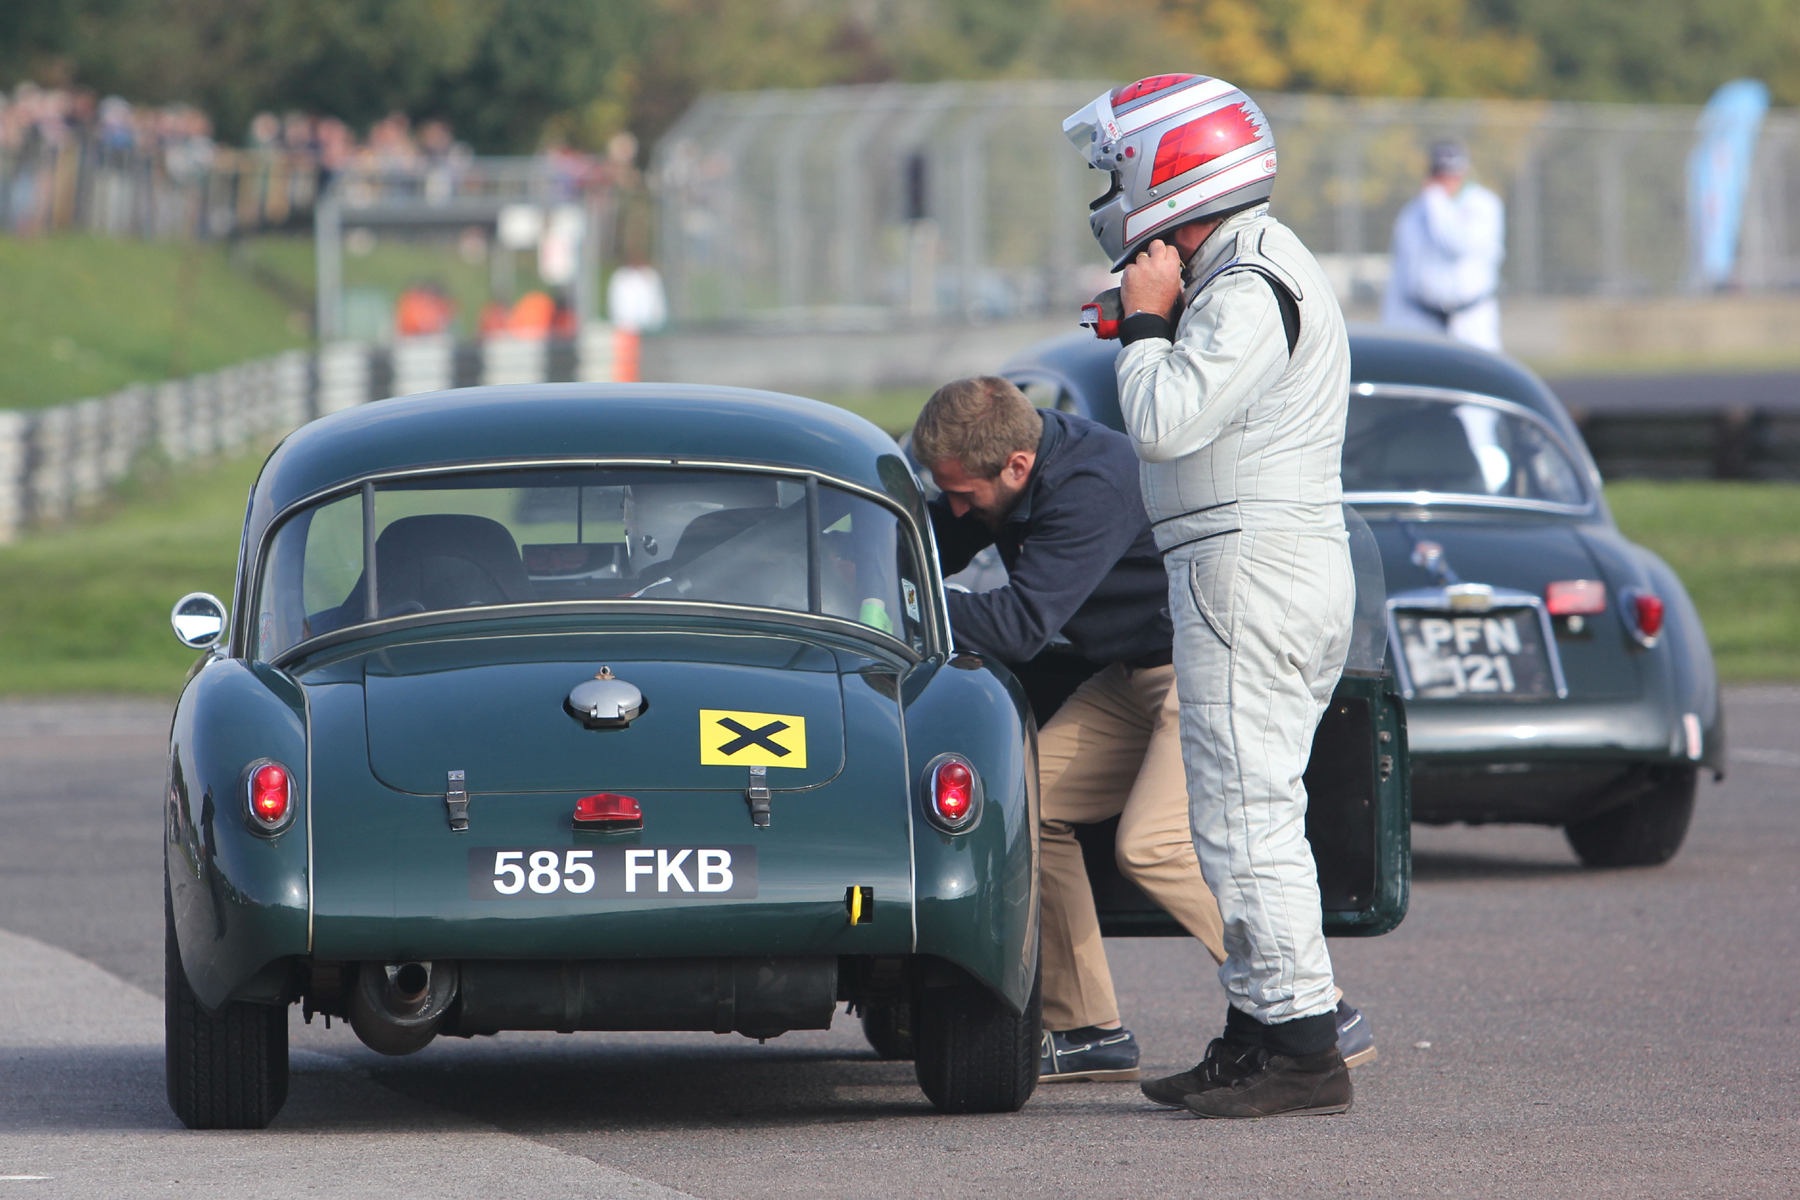 End of lap 6 and Glenn Tollett starts to remove his helmet as son, Rory gets strapped in          Photo - Pat Arculus, Tripos Media